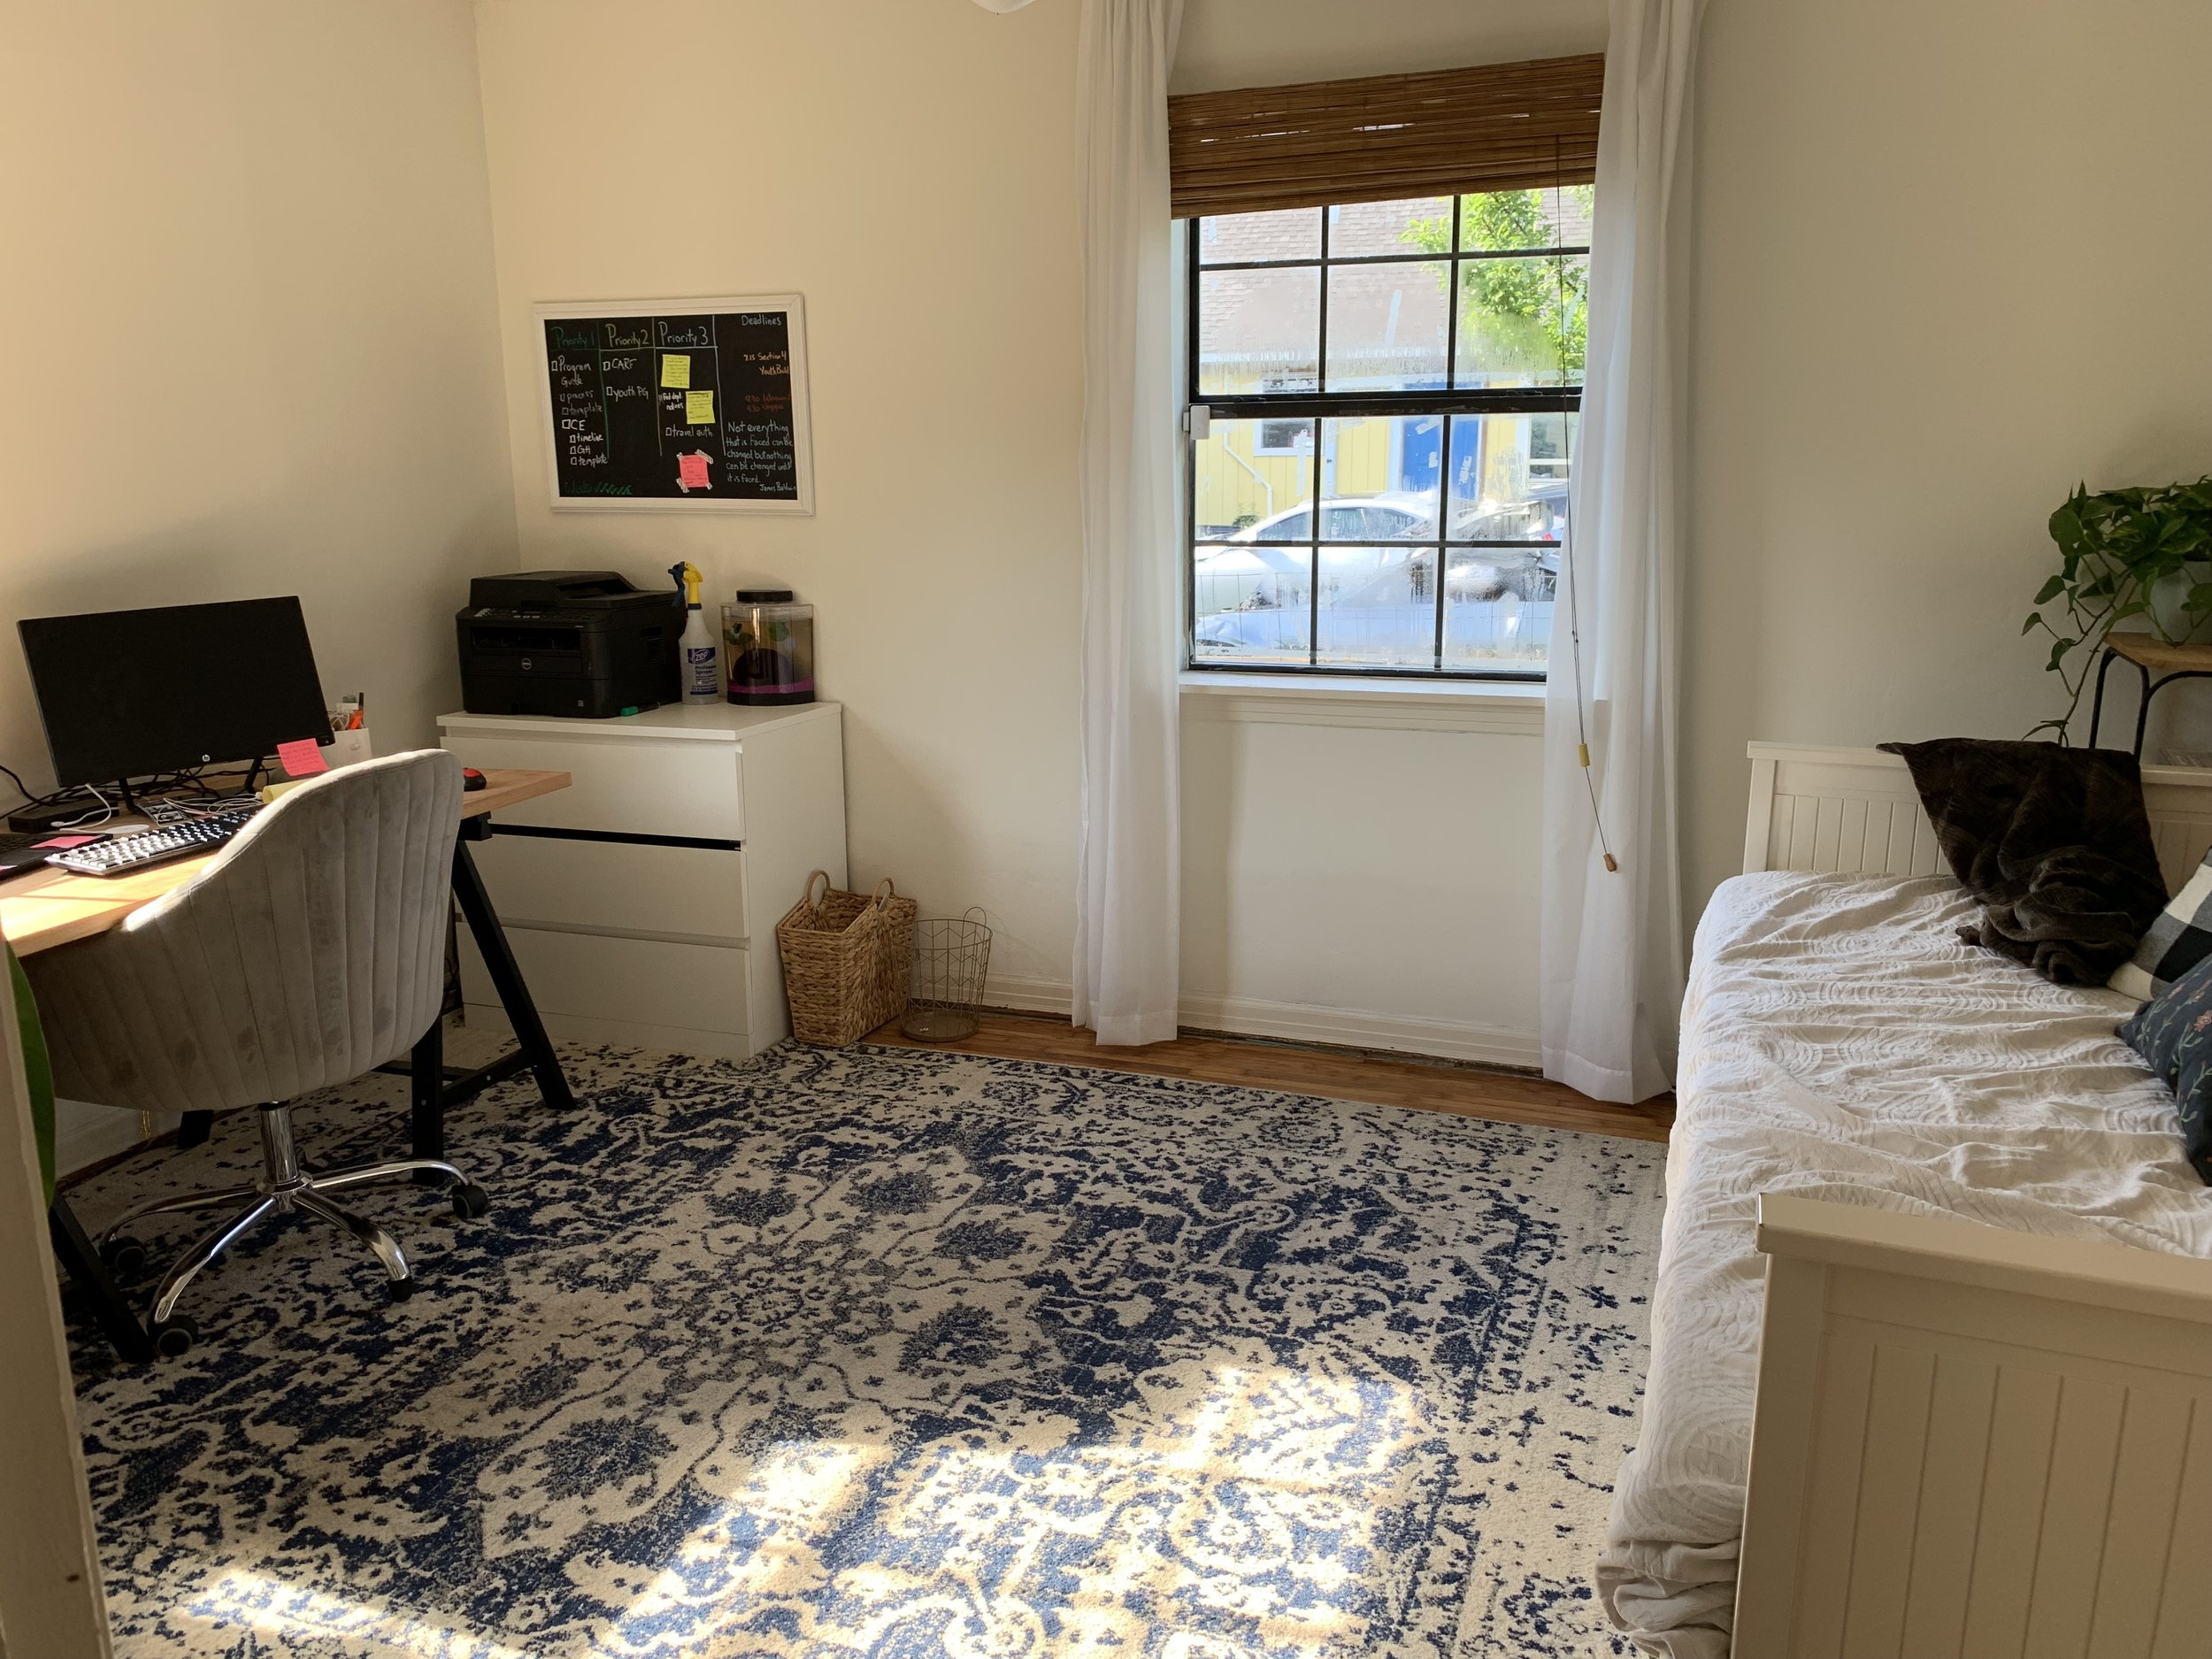 """POWER OF A RUG. I cannot get enough of this rug. It brings two very distinct halves of this multi-purpose room together. In the words of Tim Gunn, """" Cohesionnnnn ."""""""